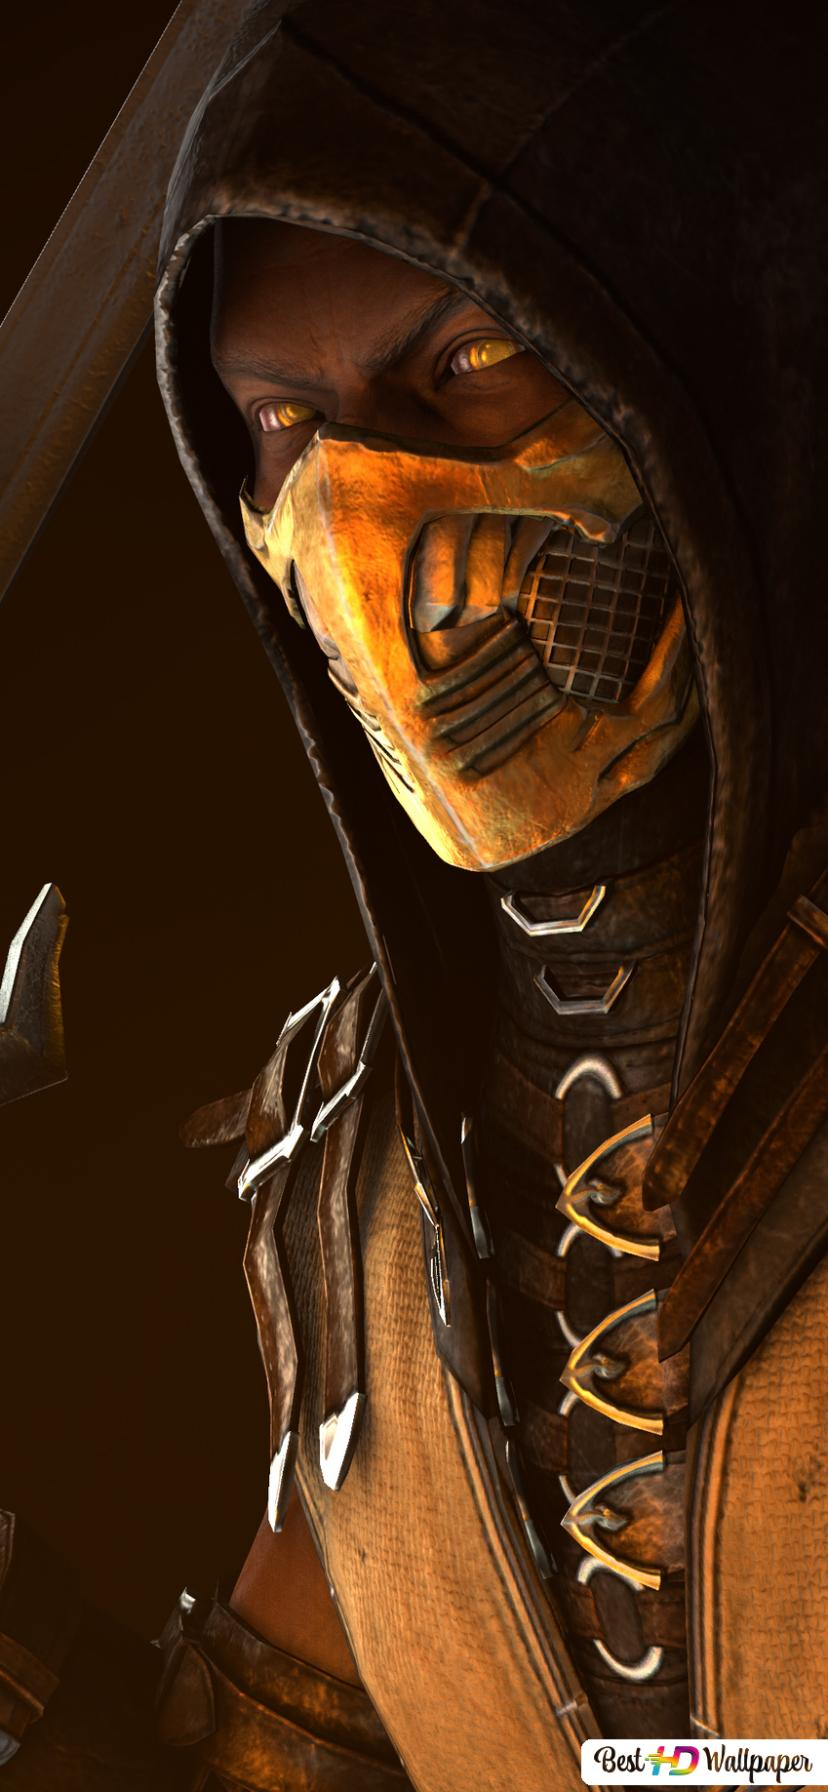 Mortal Kombat X The Ninja From Hell Scorpion Hd Wallpaper Download